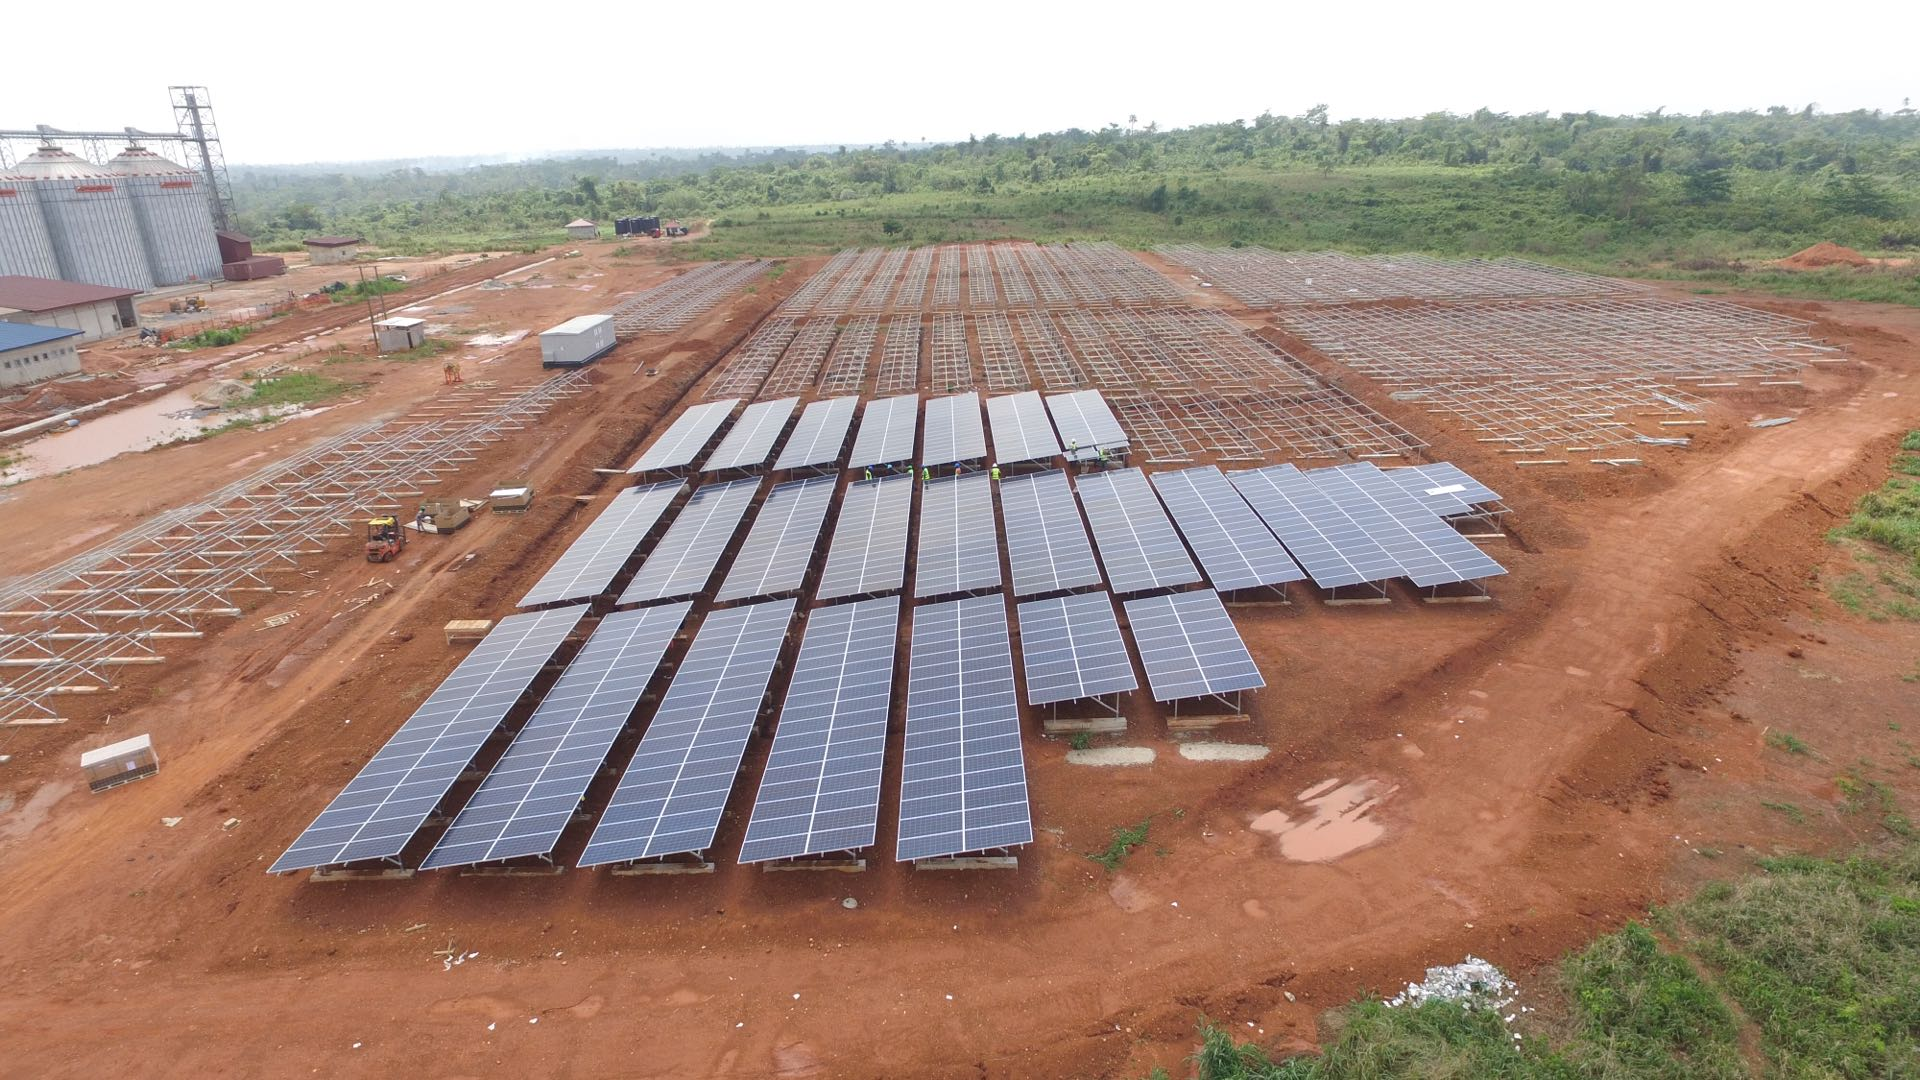 Another solar city! CHINT won the 2MW solar project in Ghana